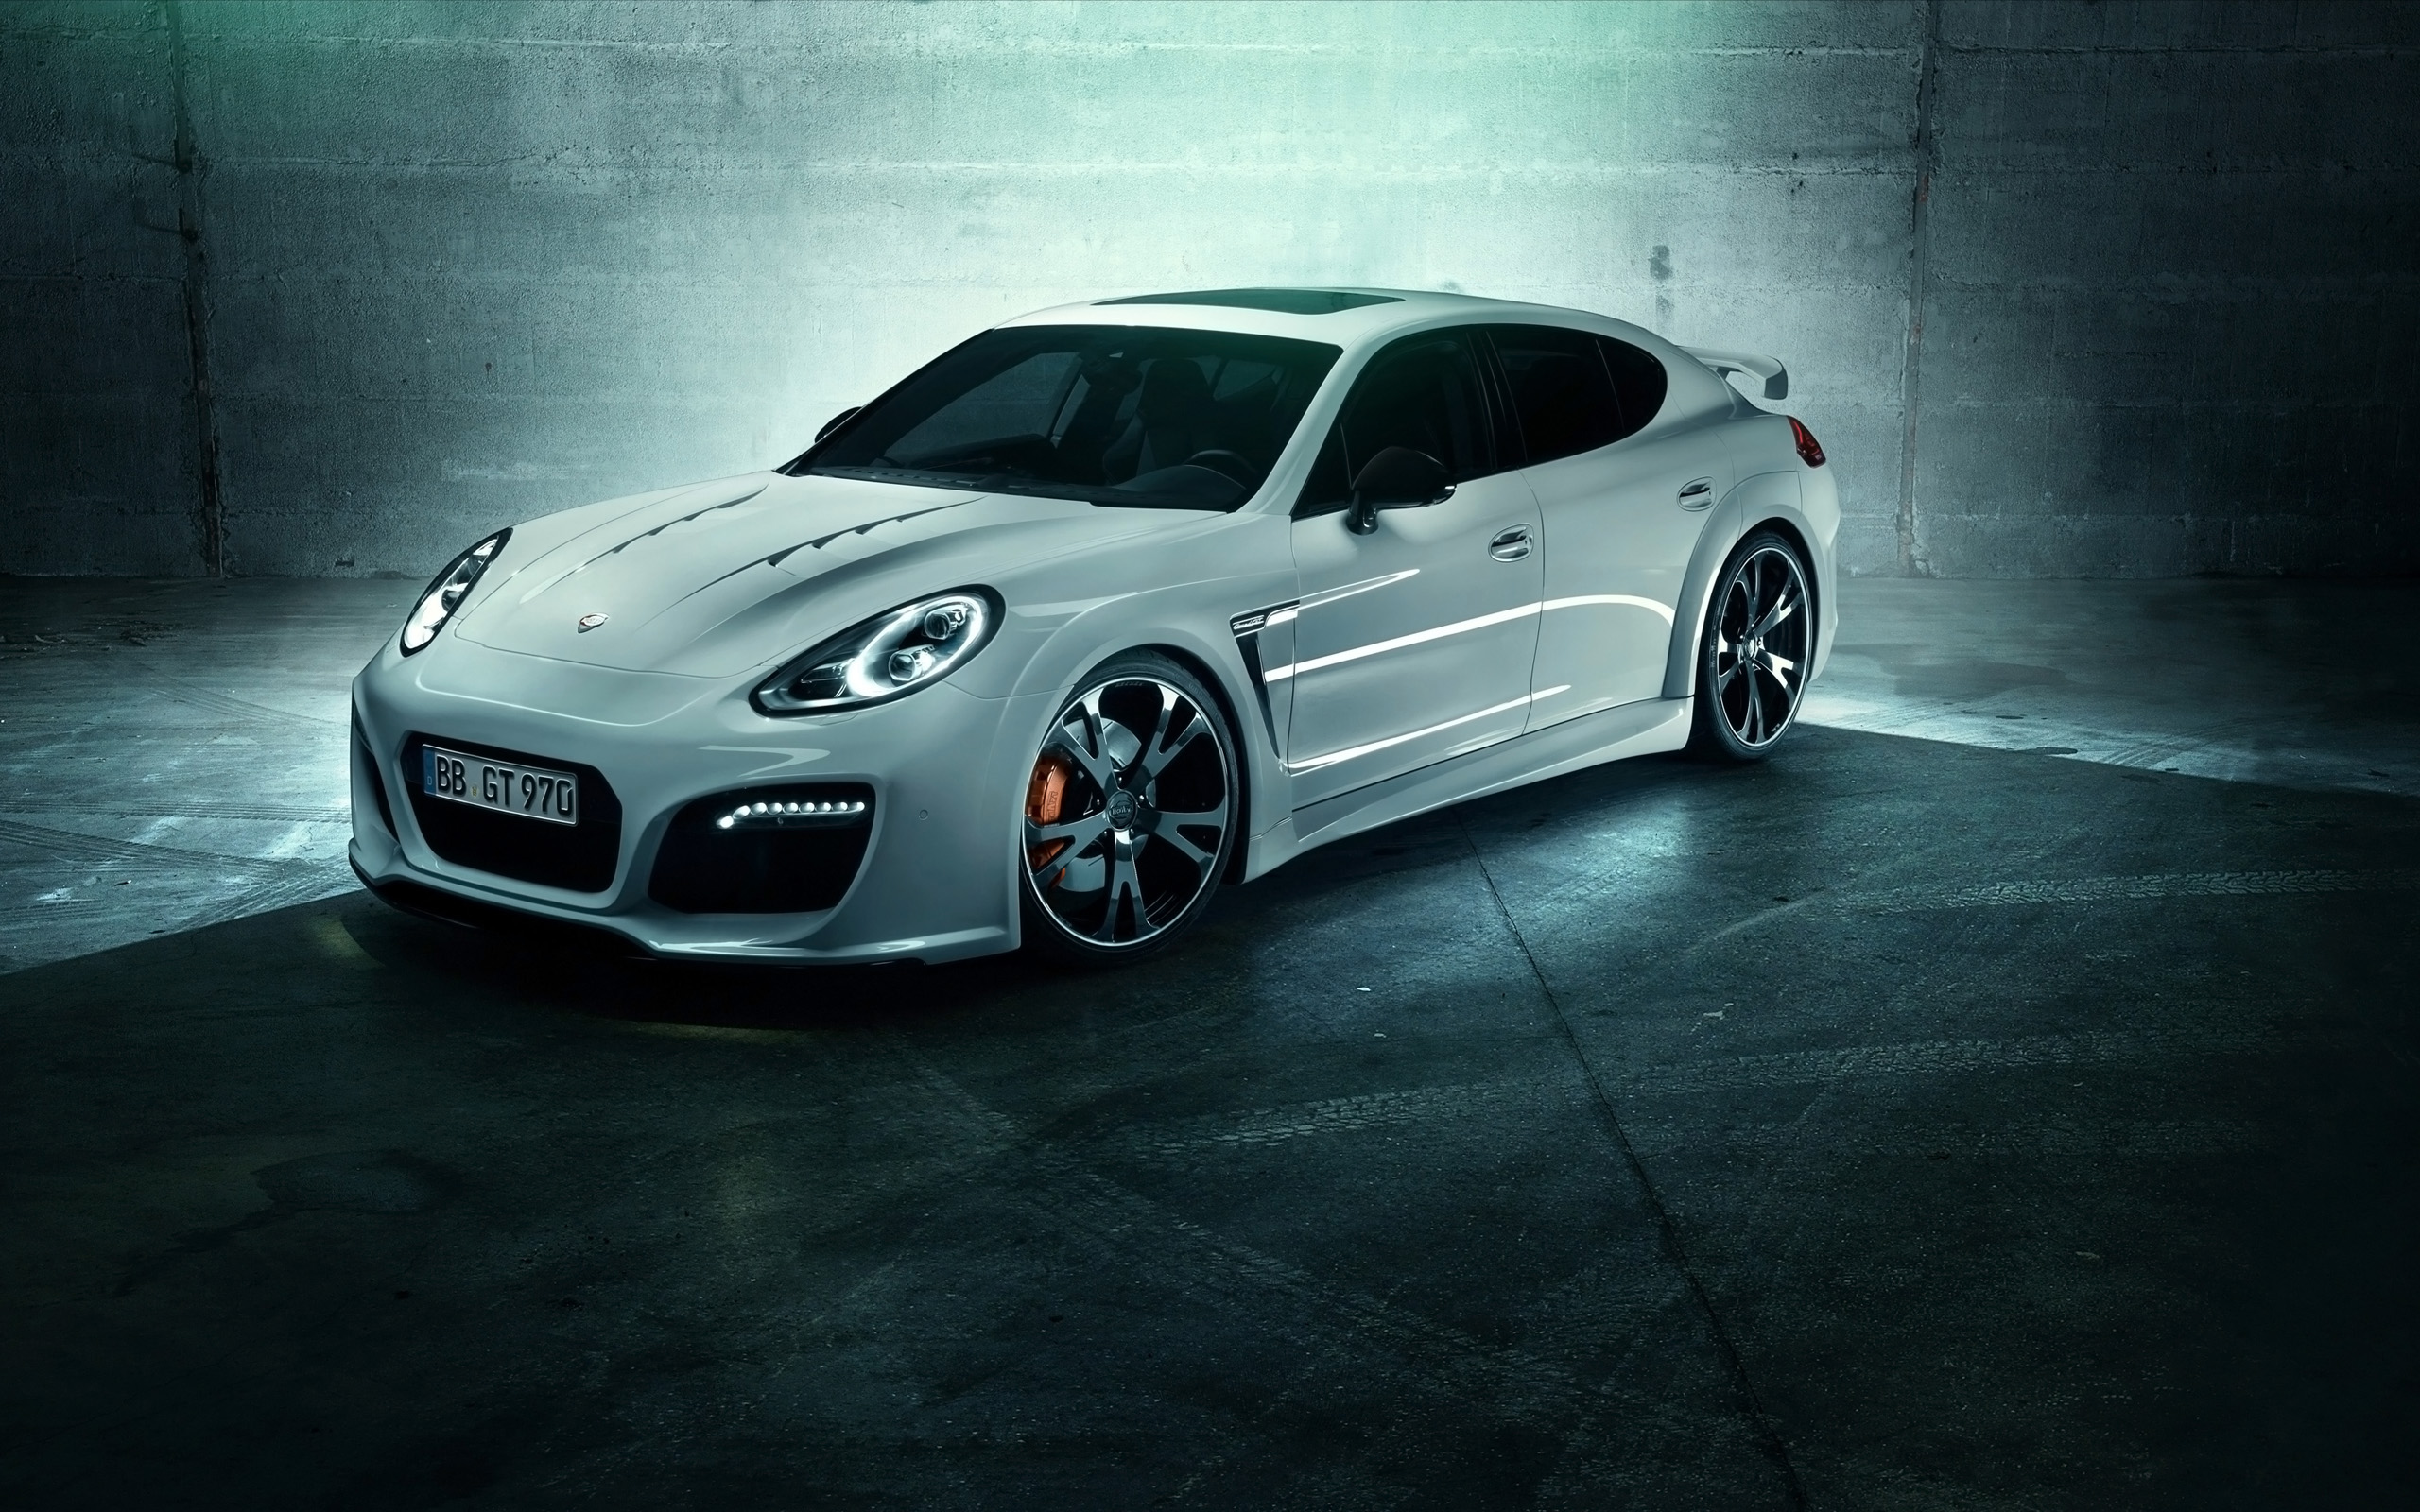 TechArt Porsche Panamera Turbo GrandGT 2014 540.67 Kb